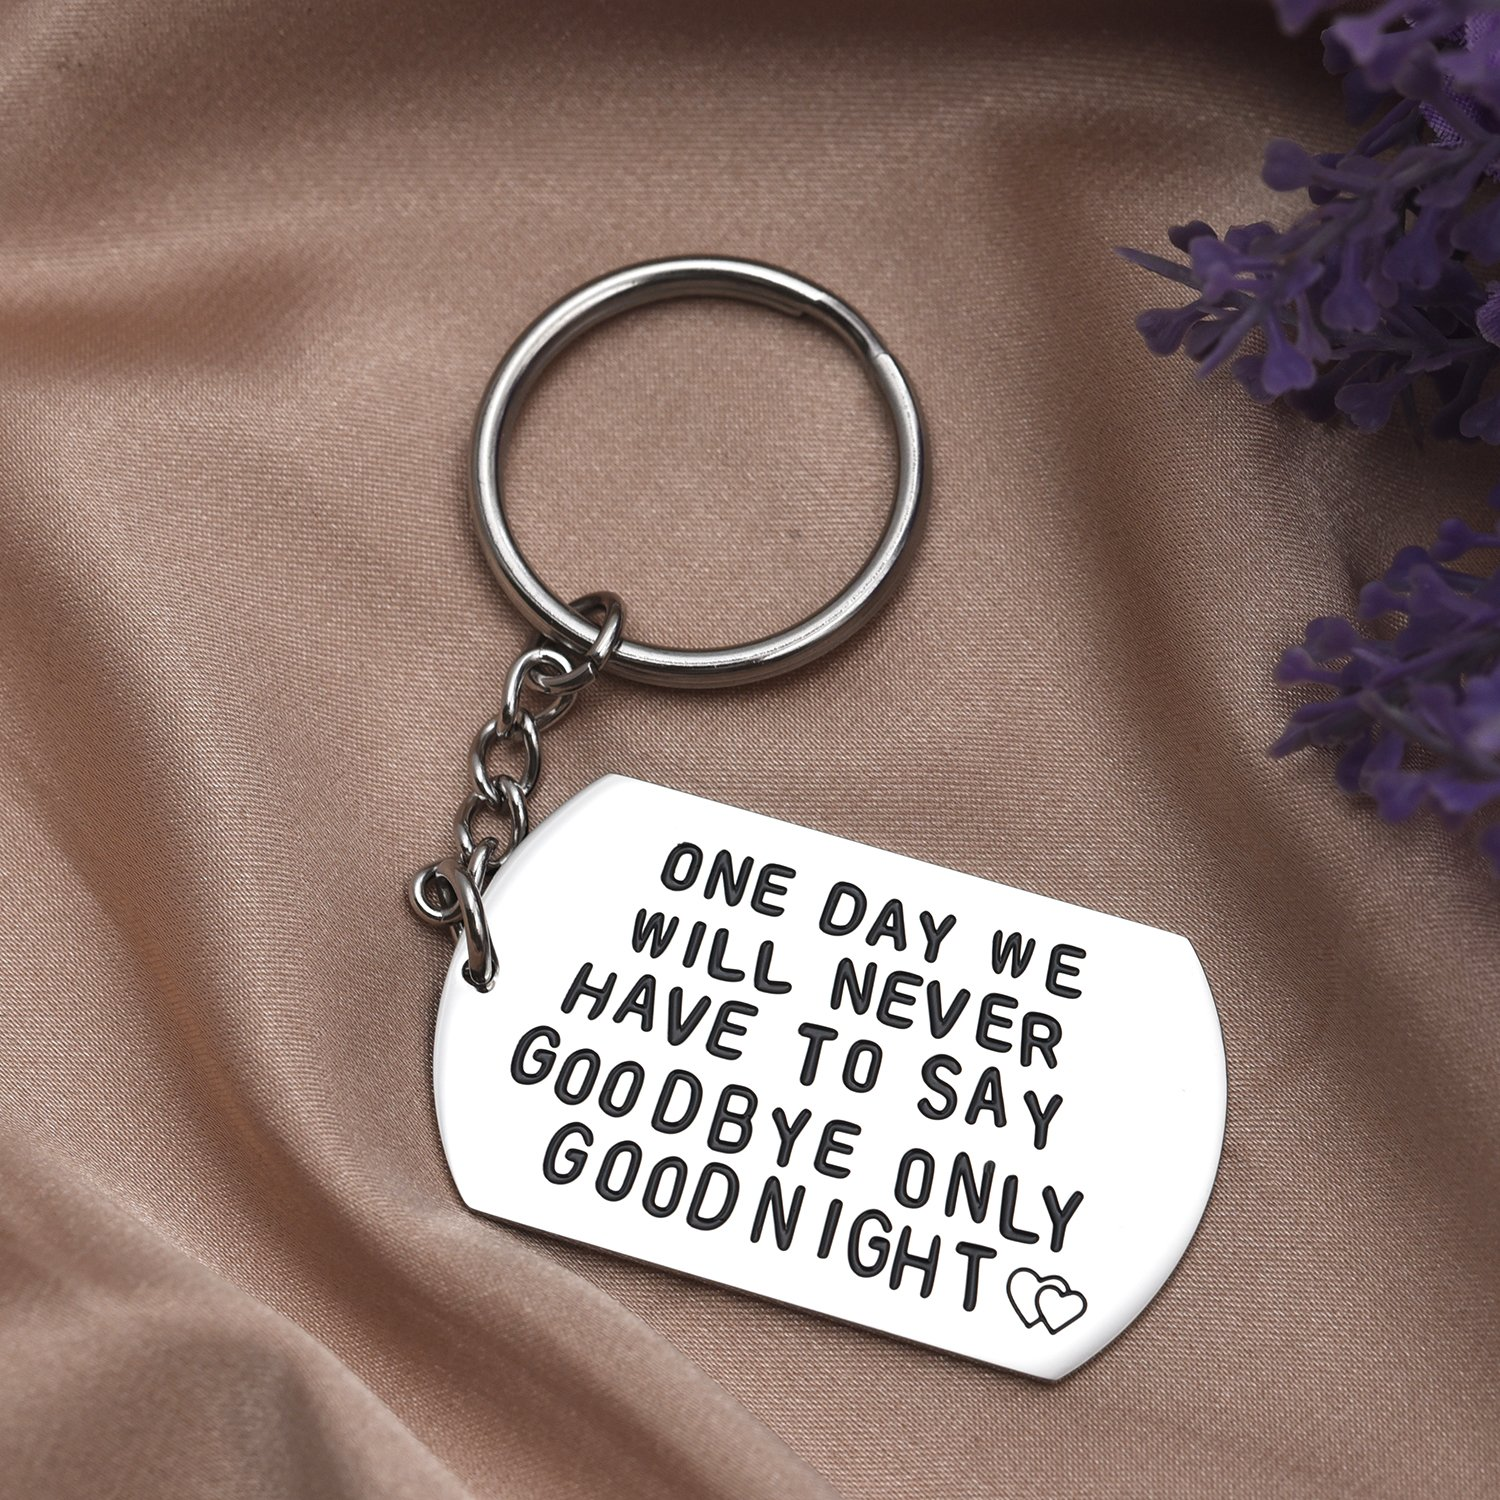 LParkin One Day We Will Never Have to Say Goodbye Long Distance Relationship Gifts Keychain/Necklace Love Quote Valentines Gift (Keychain) by LParkin (Image #2)